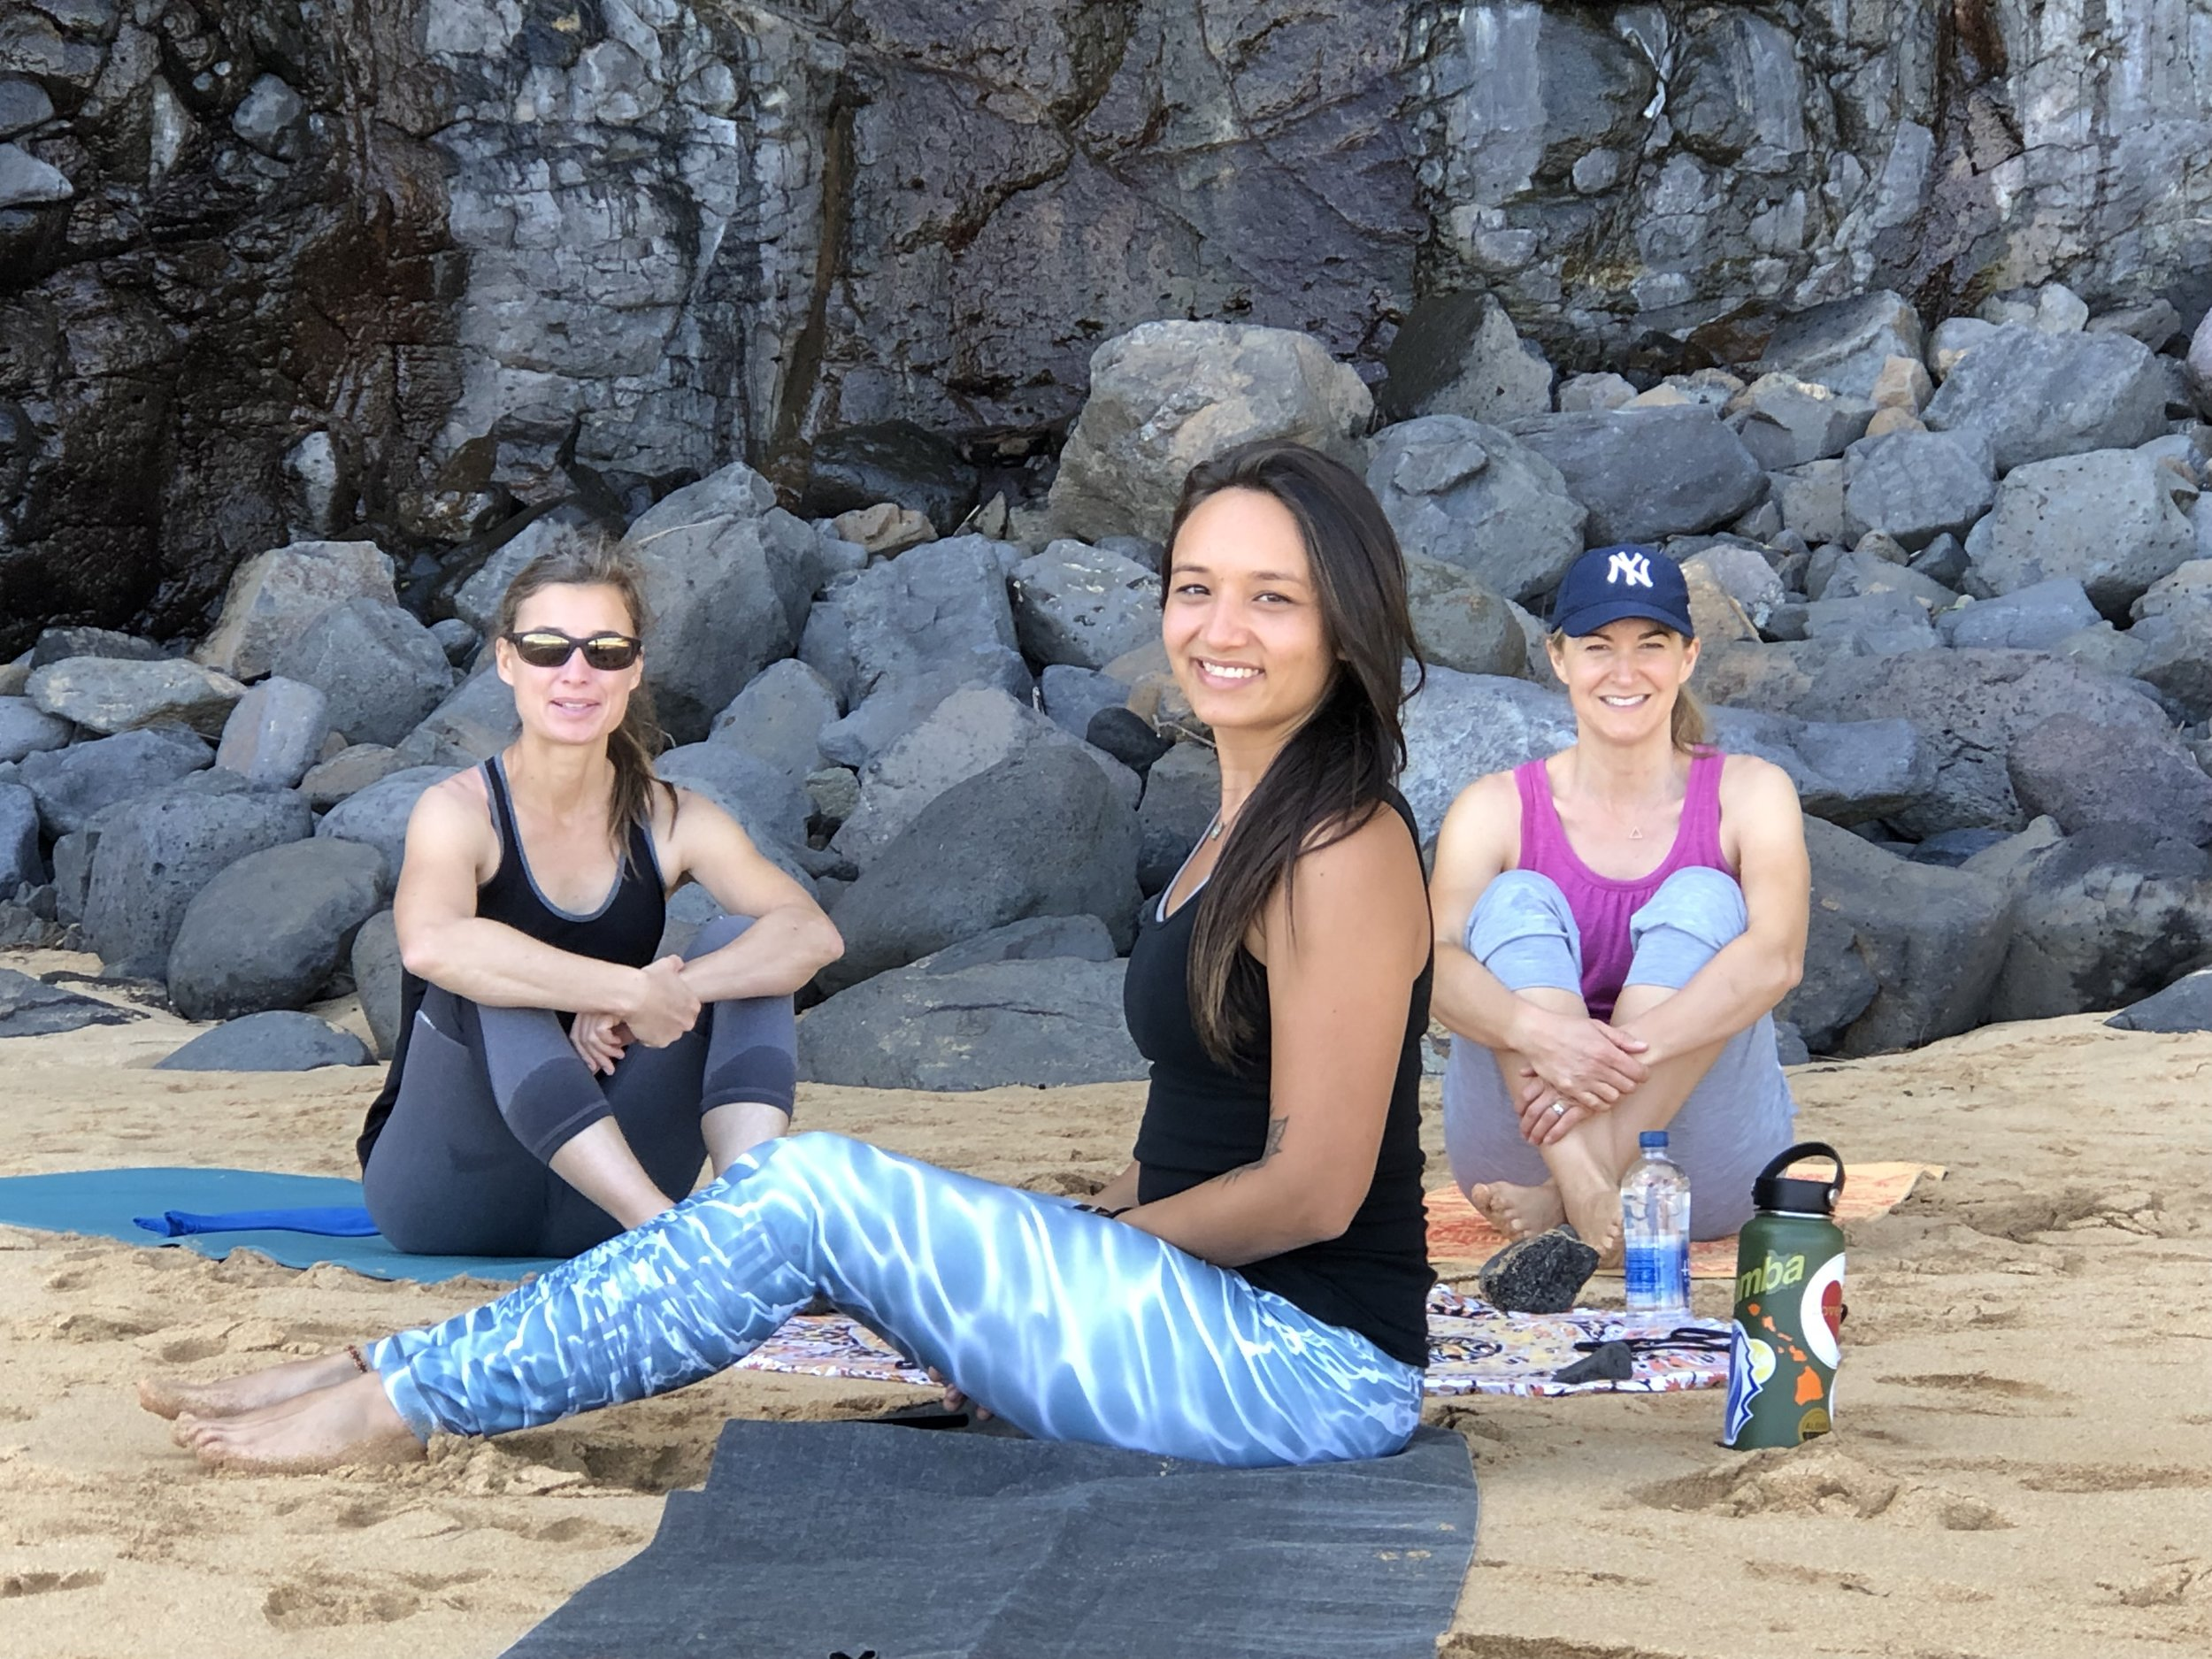 Private Yoga Class - ✧ We come to you!  Get a private yoga session at your own resort, condo, or hotel✧ Connect with the mana on a favorite local beach, receiving a class tailored to your level + preference.  You're pampered with aromatherapy, hands-on adjustments, + sound healing.Contact Me to coordinate time + details!